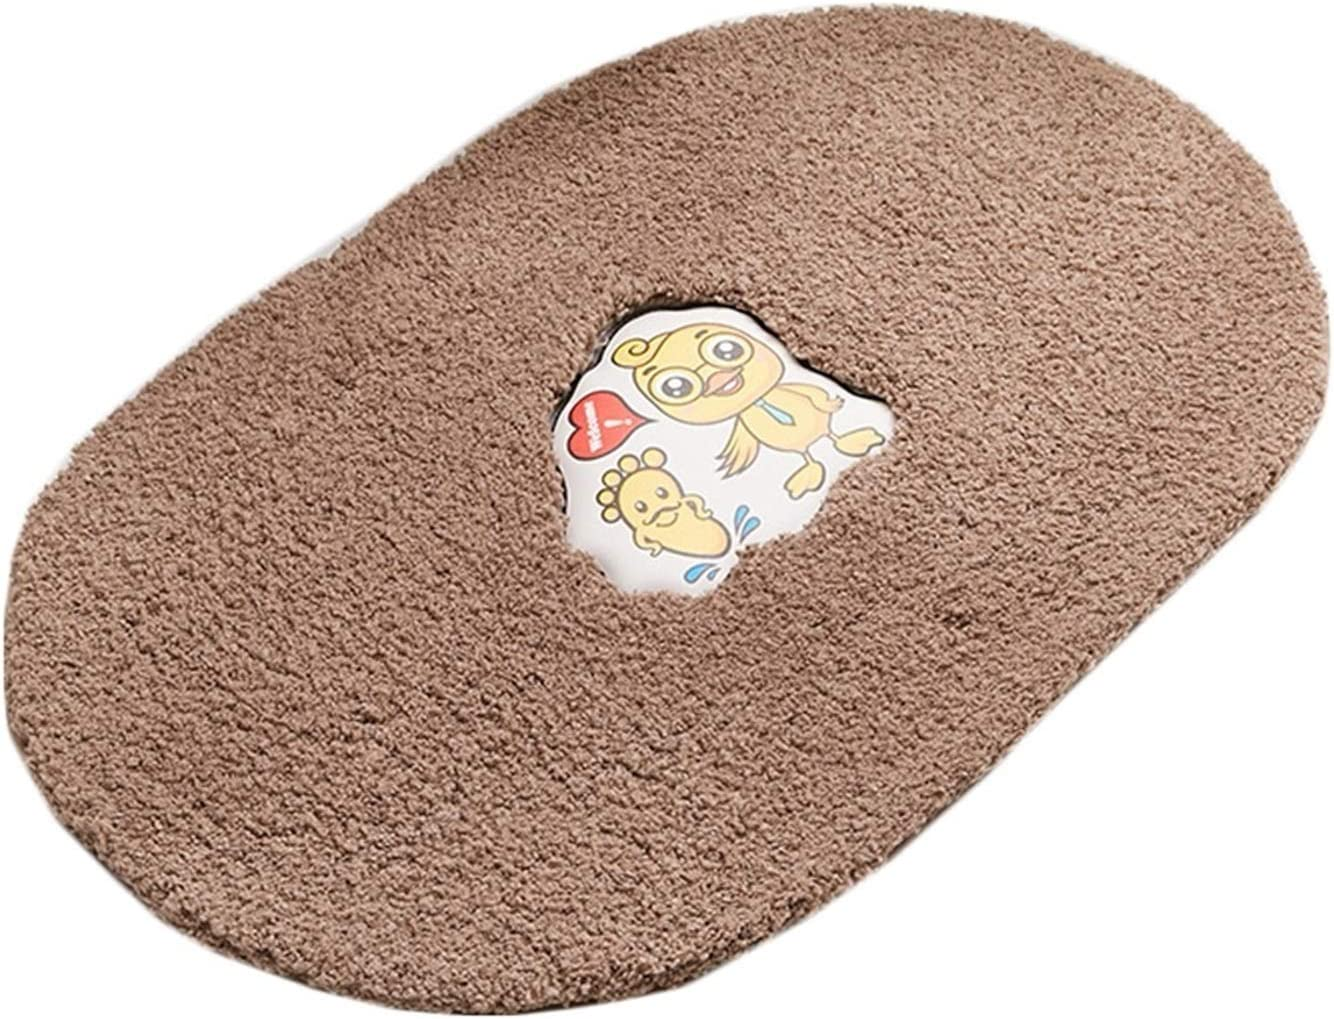 QIAOLI Don't miss the campaign Bath Mat Non Slip Bathroom Spring new work Ult Rug Absorbent